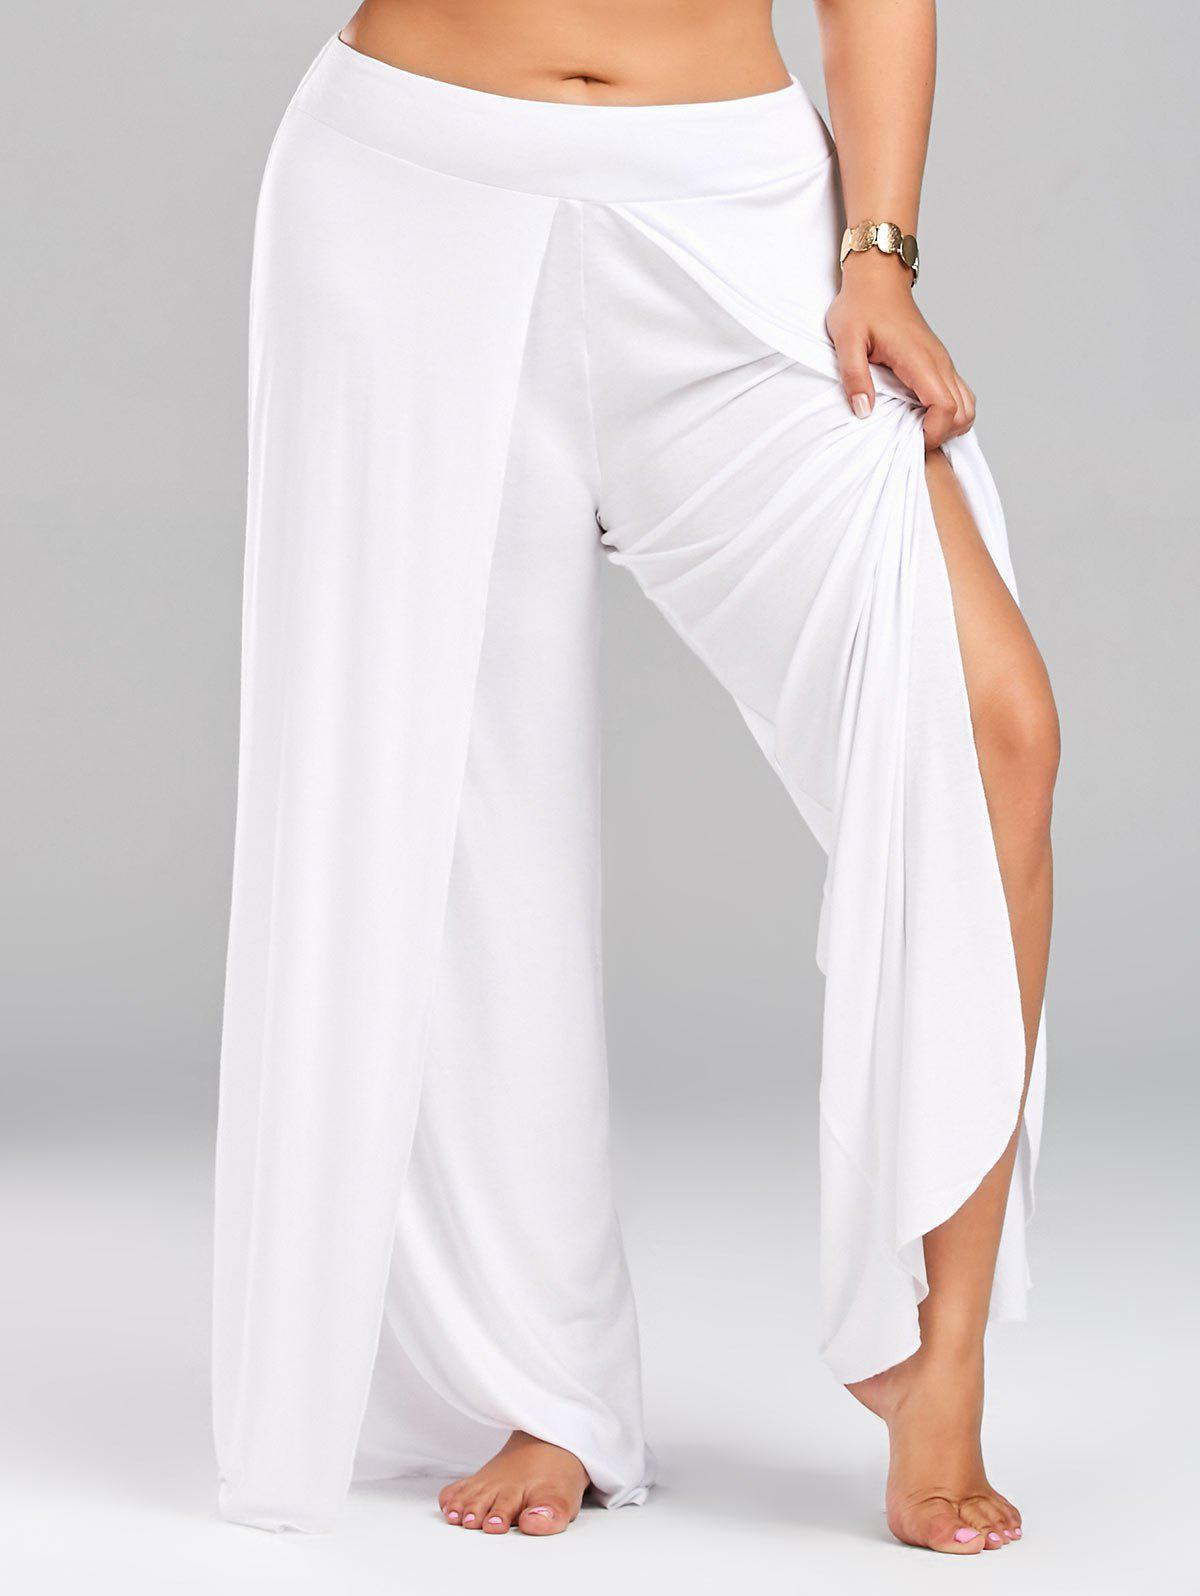 High Split Plus Size Palazzo PantsWOMEN<br><br>Size: 4XL; Color: WHITE; Style: Casual; Length: Normal; Material: Polyester; Fit Type: Loose; Waist Type: Mid; Closure Type: Elastic Waist; Front Style: Flat; Pattern Type: Solid; Pant Style: Wide Leg Pants; With Belt: No; Weight: 0.5600kg; Package Contents: 1 x Pants;